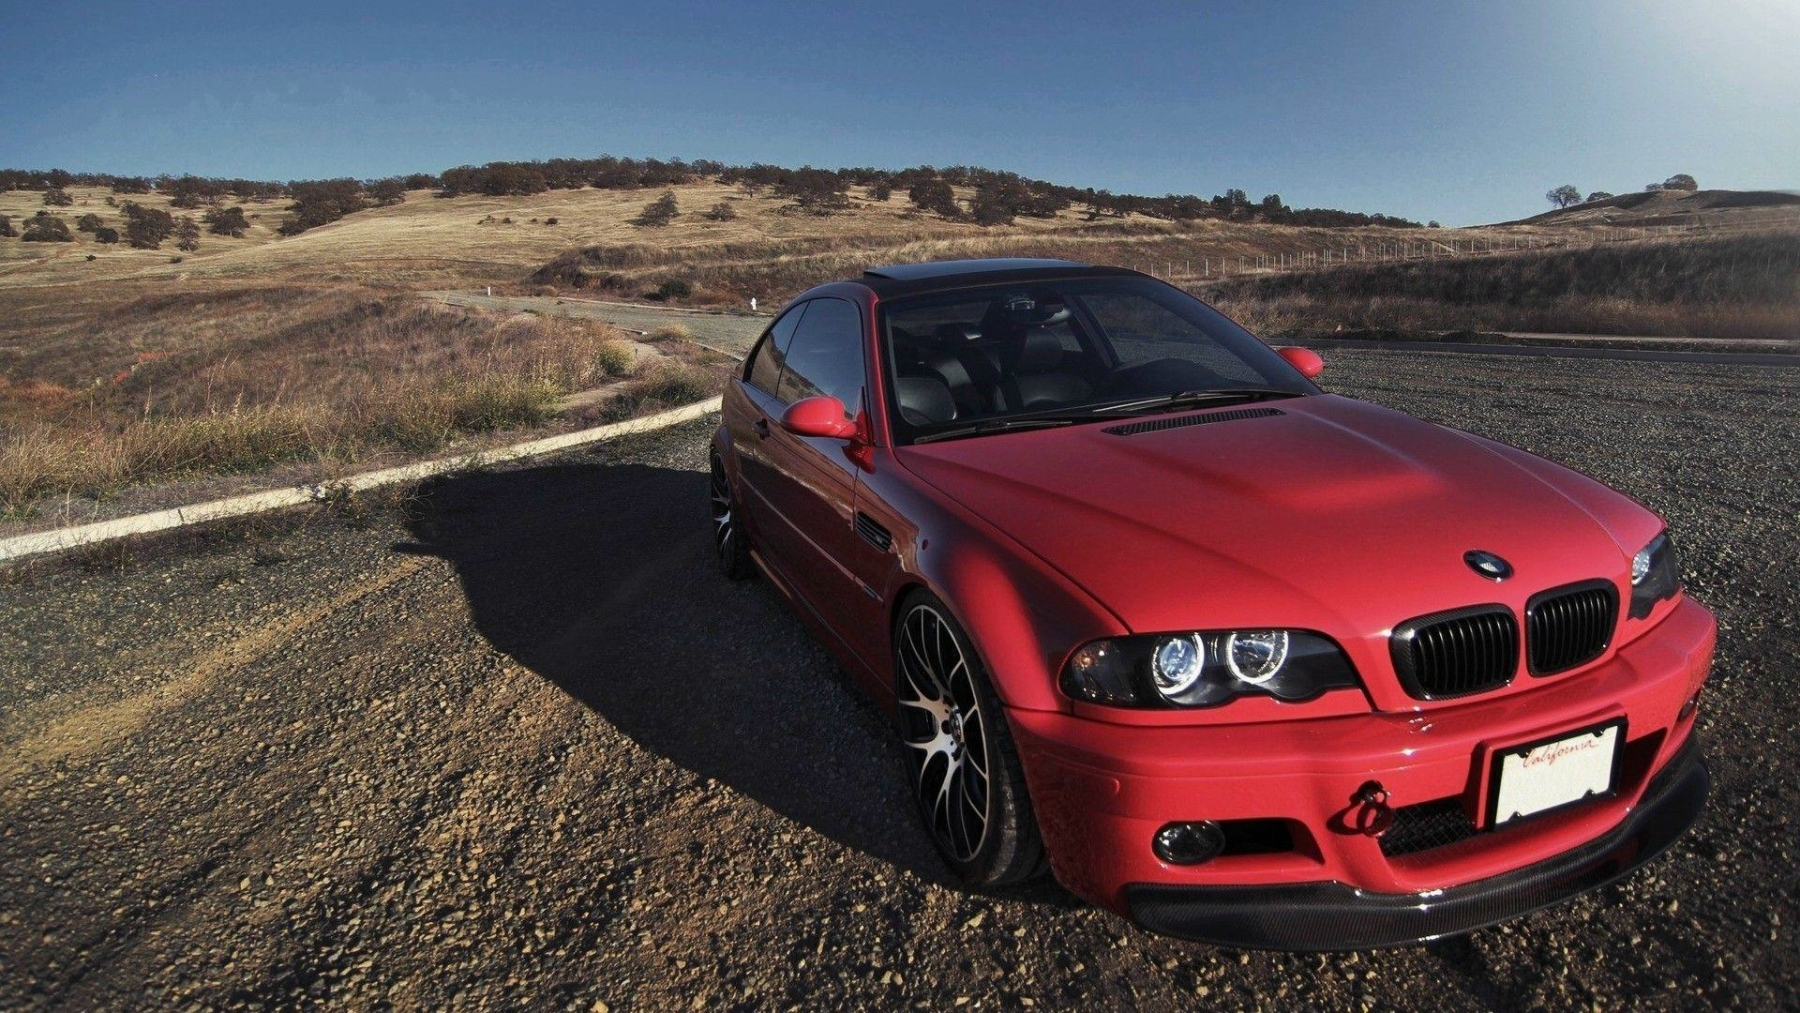 Bmw E46 M3 Gtr Hd Wallpapers Background Images Photos